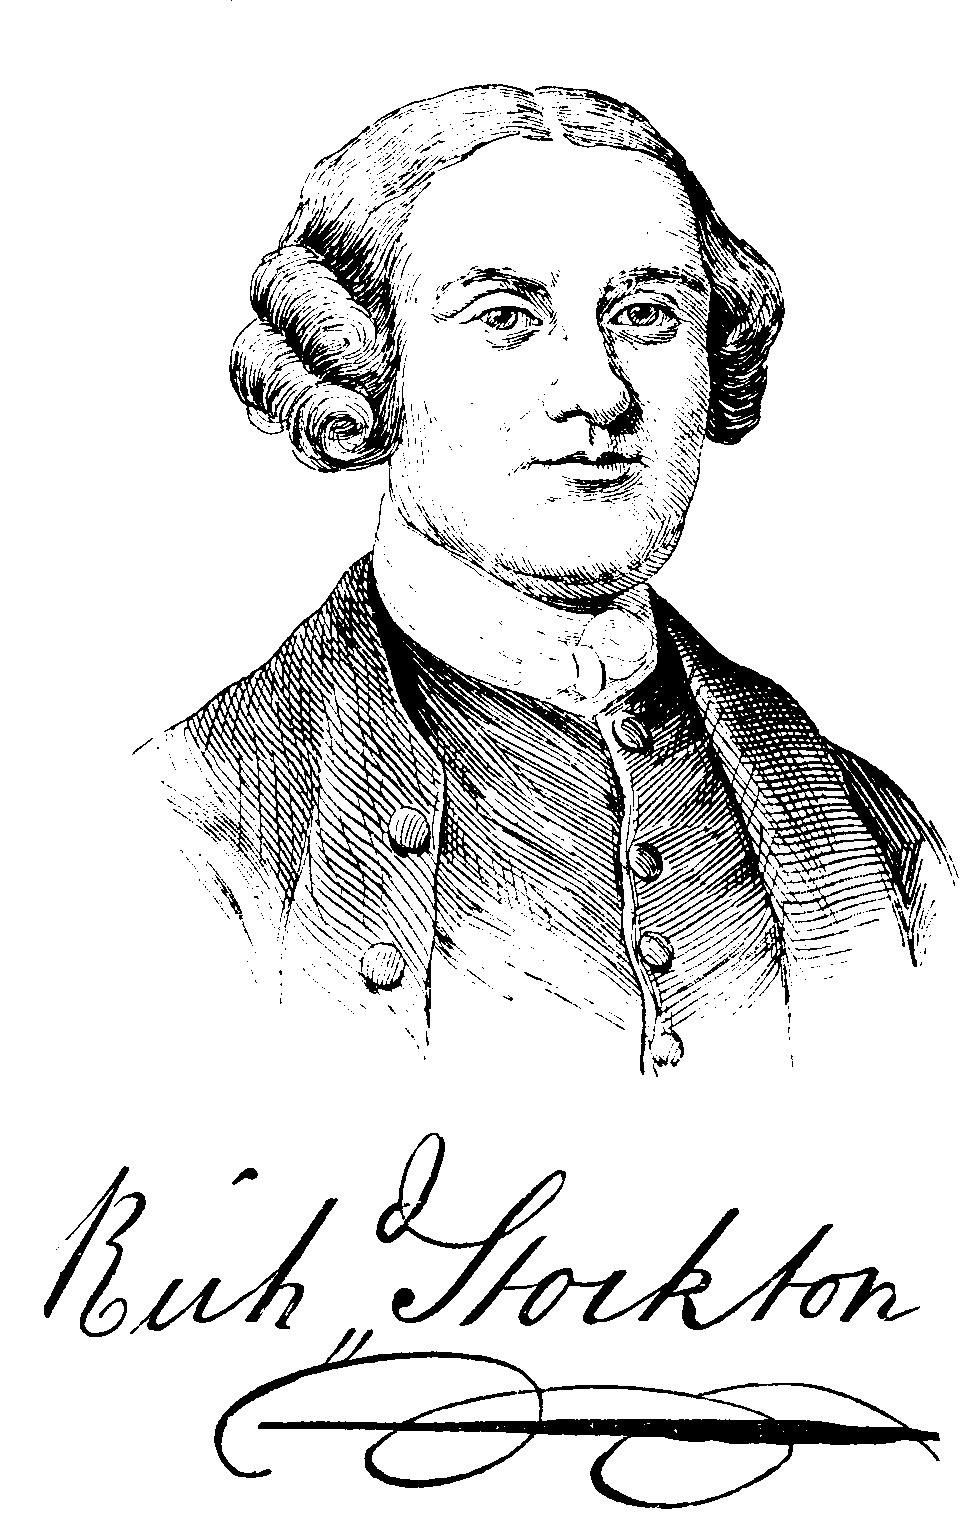 richard stockton Richard stockton was born near princeton, on october 1, 1730 he attended the  west nottingham academy under dr samuel finley, and then earned his.